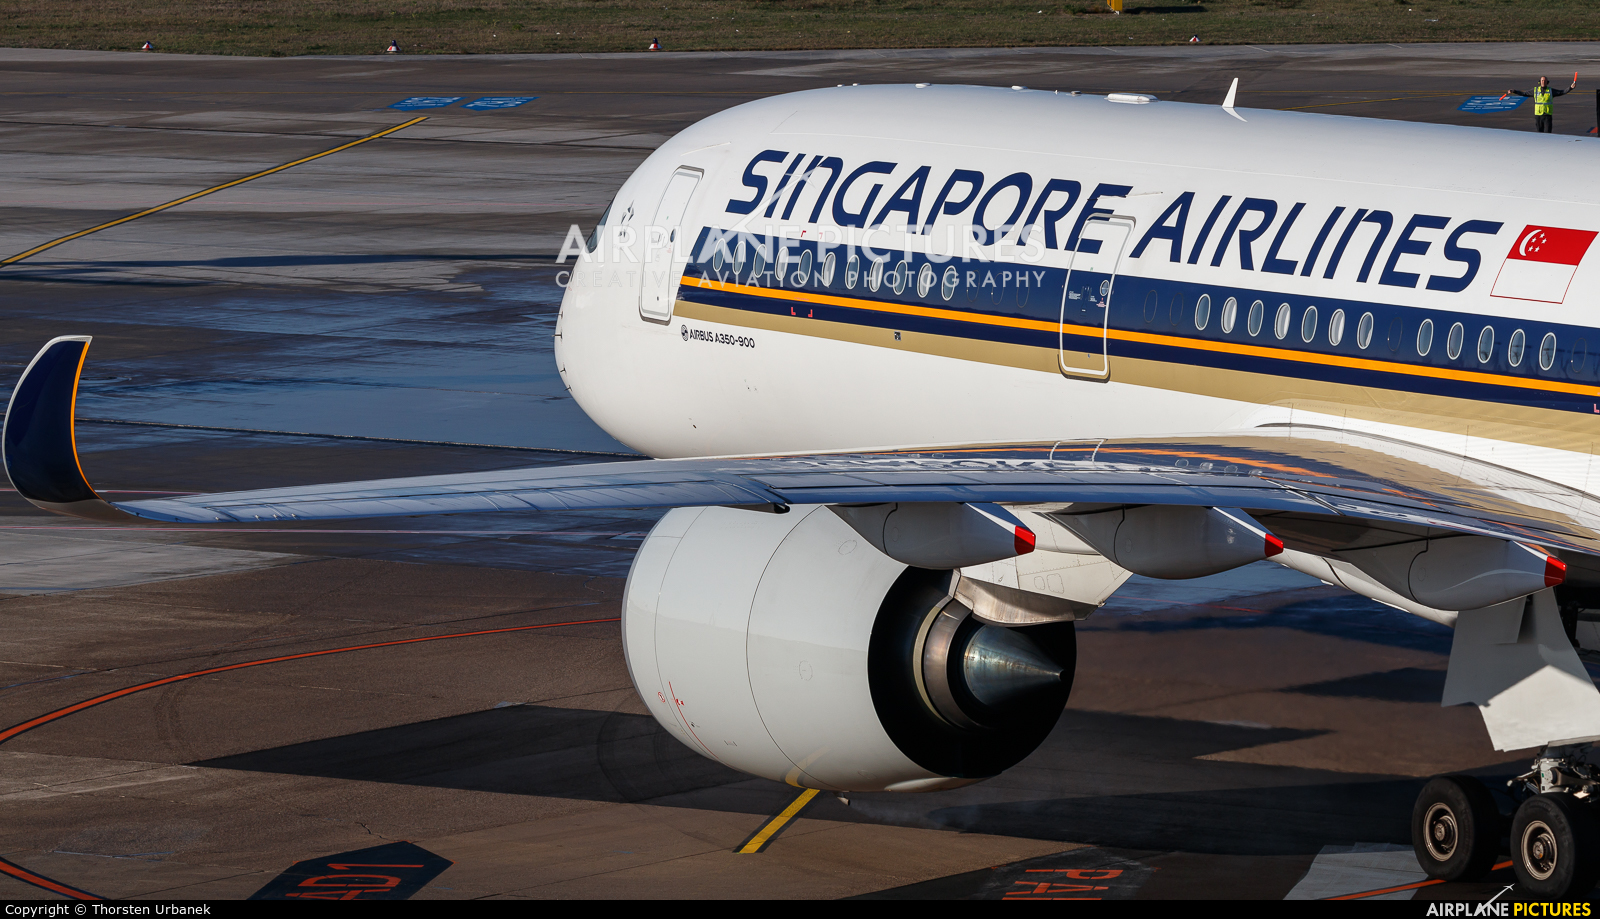 Singapore Airlines 9V-SMH aircraft at Düsseldorf